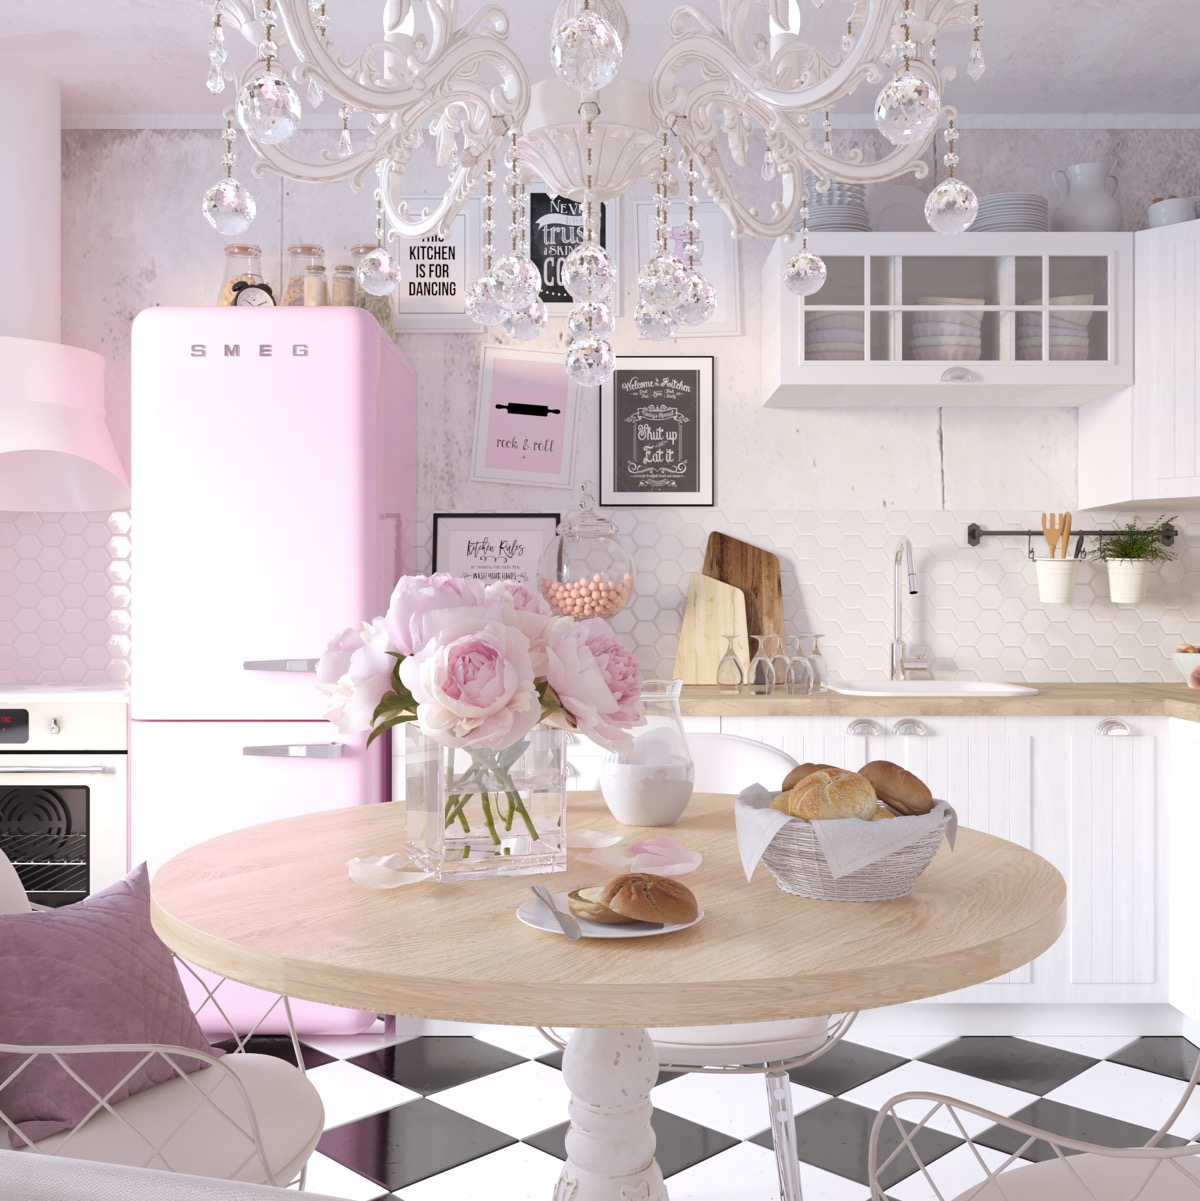 51 Inspirational Pink Kitchens With Tips & Accessories To Help You Design Yours images 40